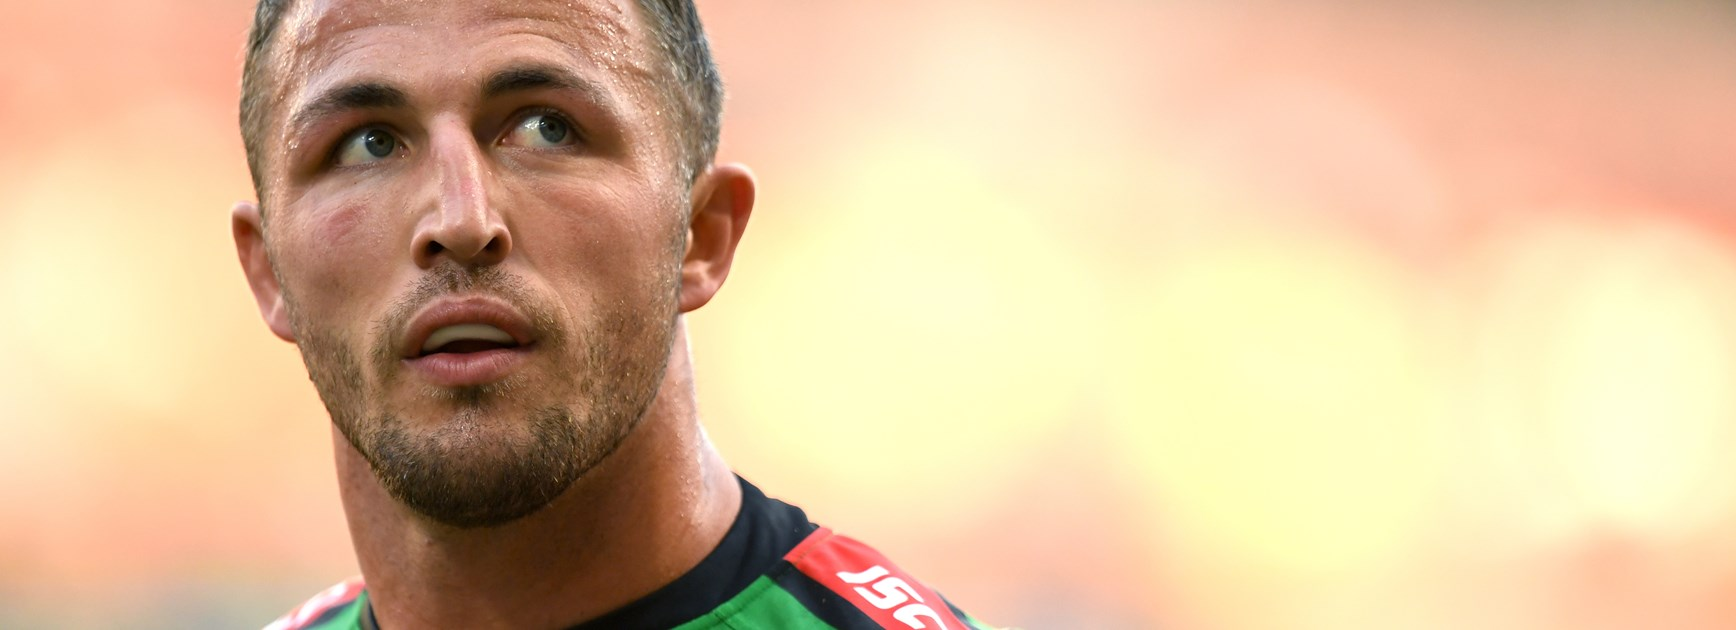 Judiciary update: Sam Burgess to miss finals week one